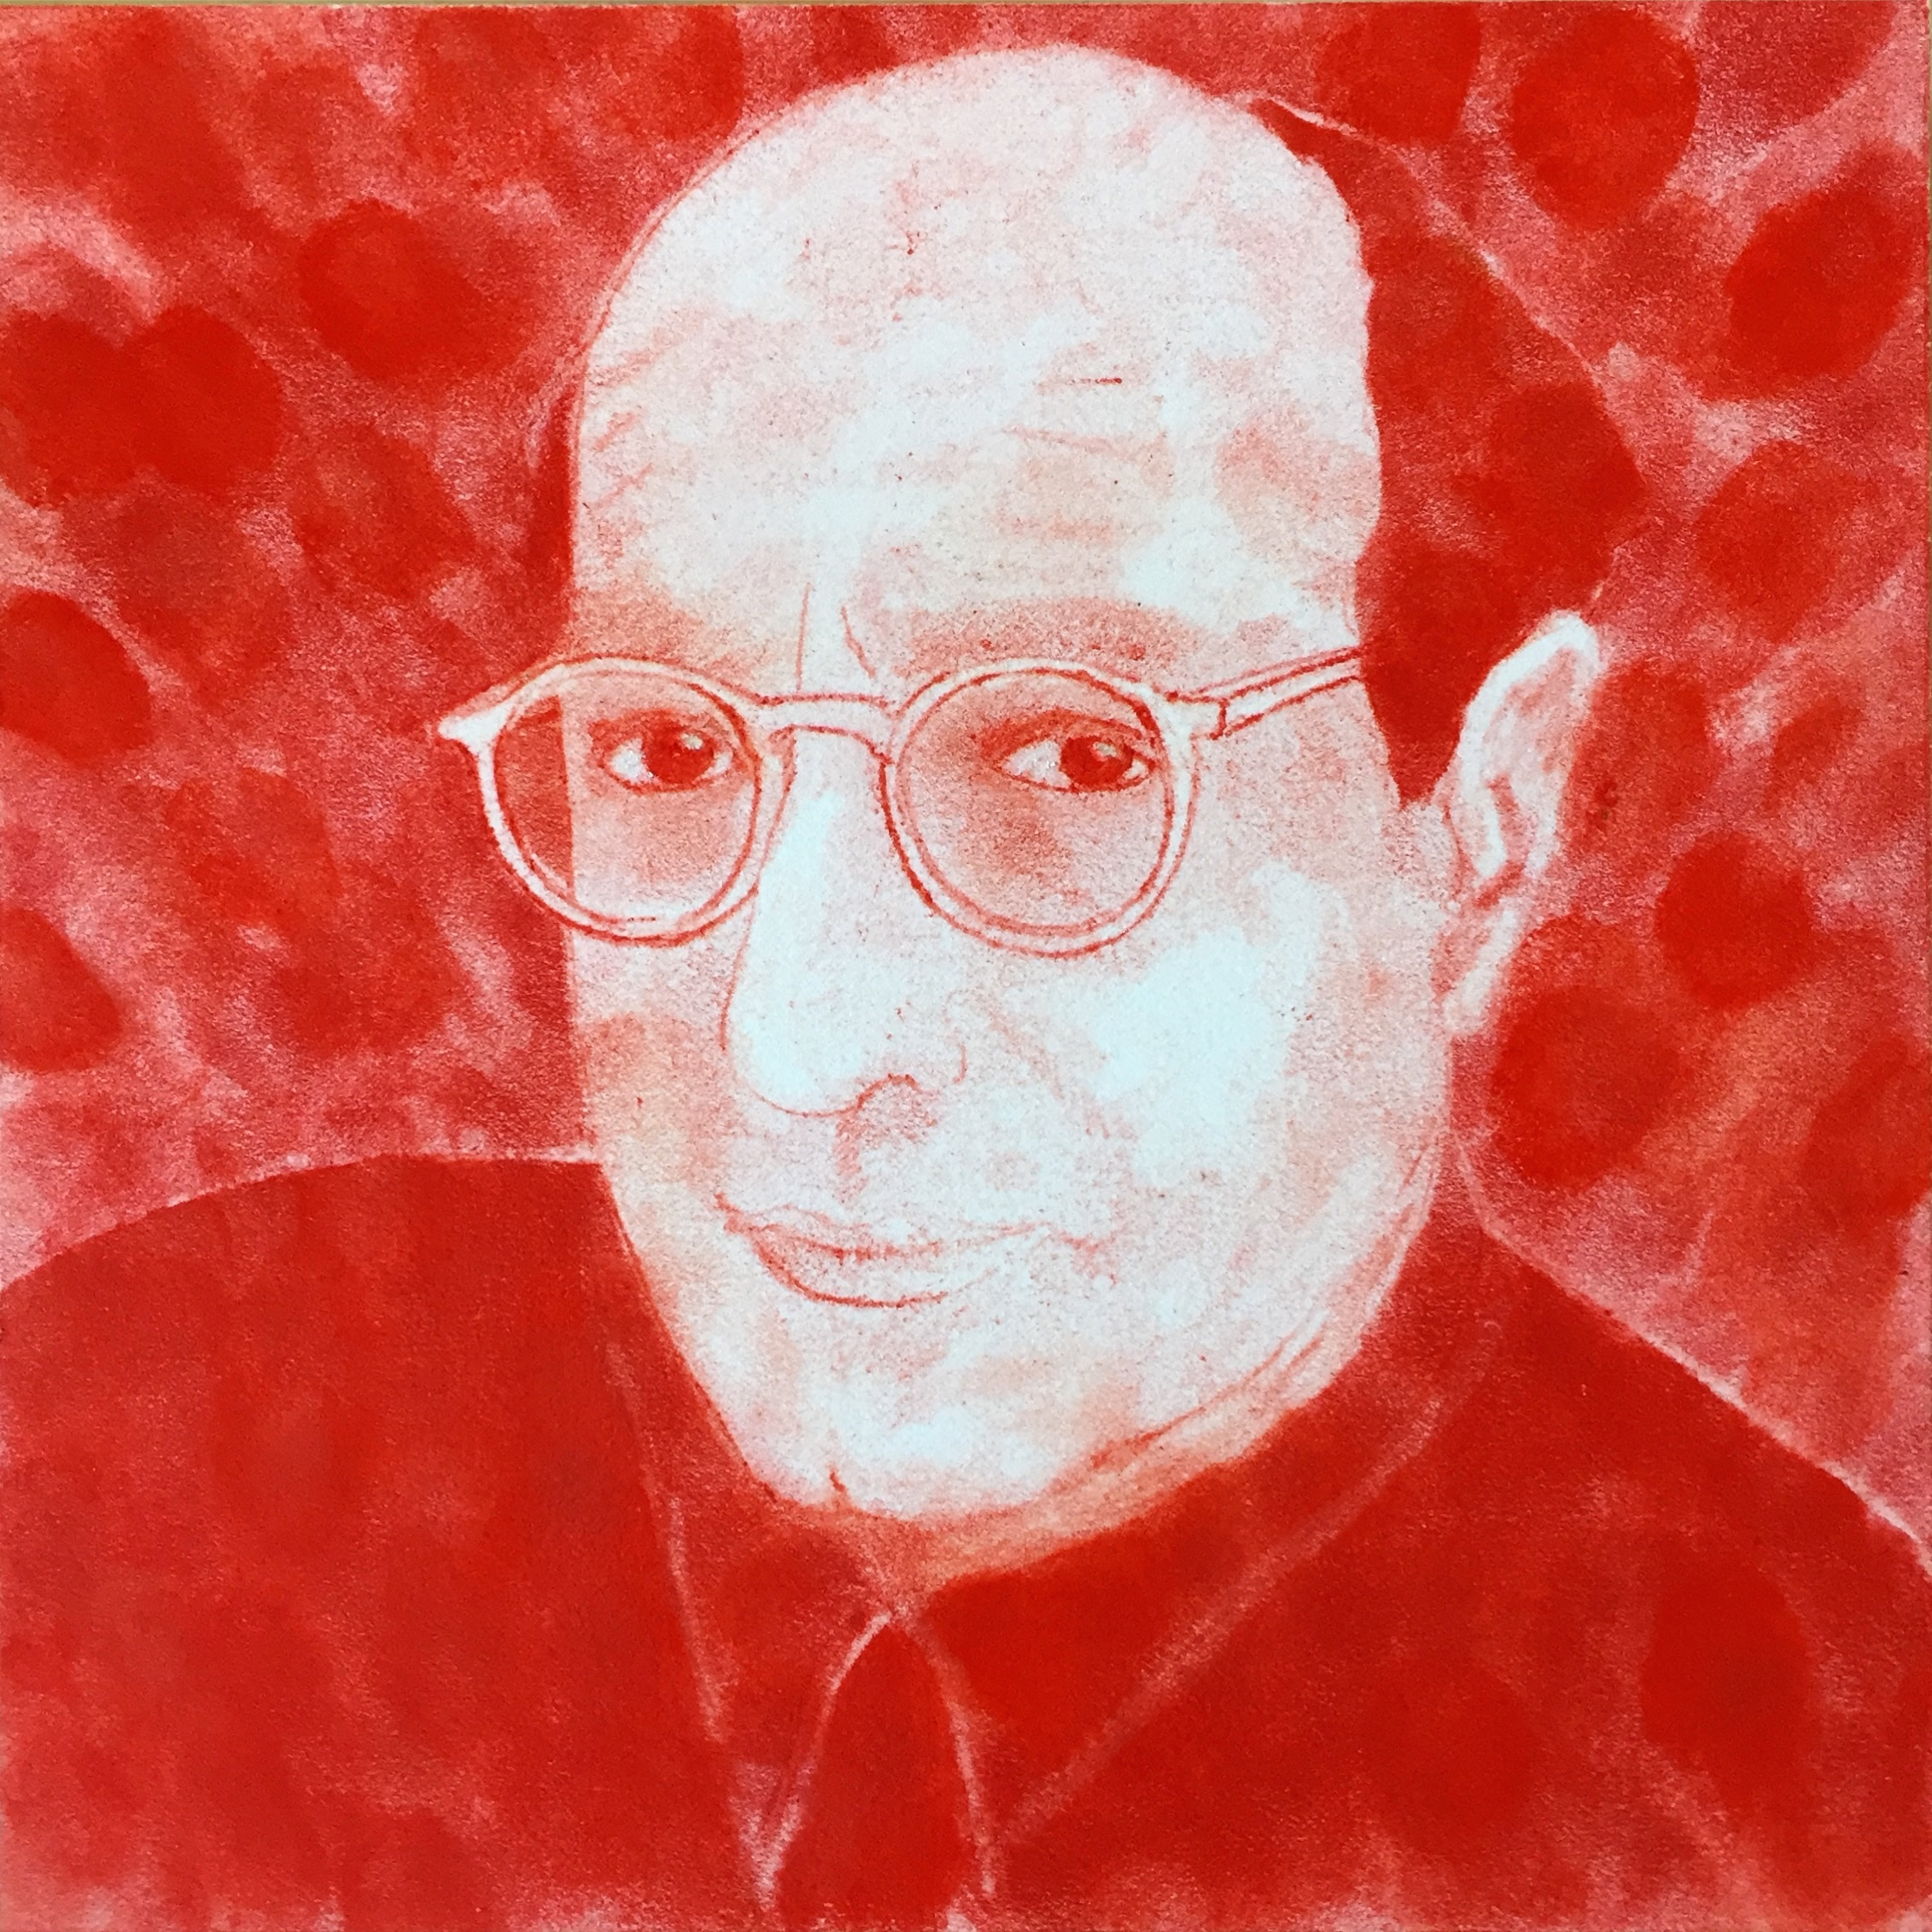 "Stephen Whisler  Mark Rothko , 2017 pastel on paper mounted on panel 8 x 8"" courtesy of Chandra Cerrito Contemporary"